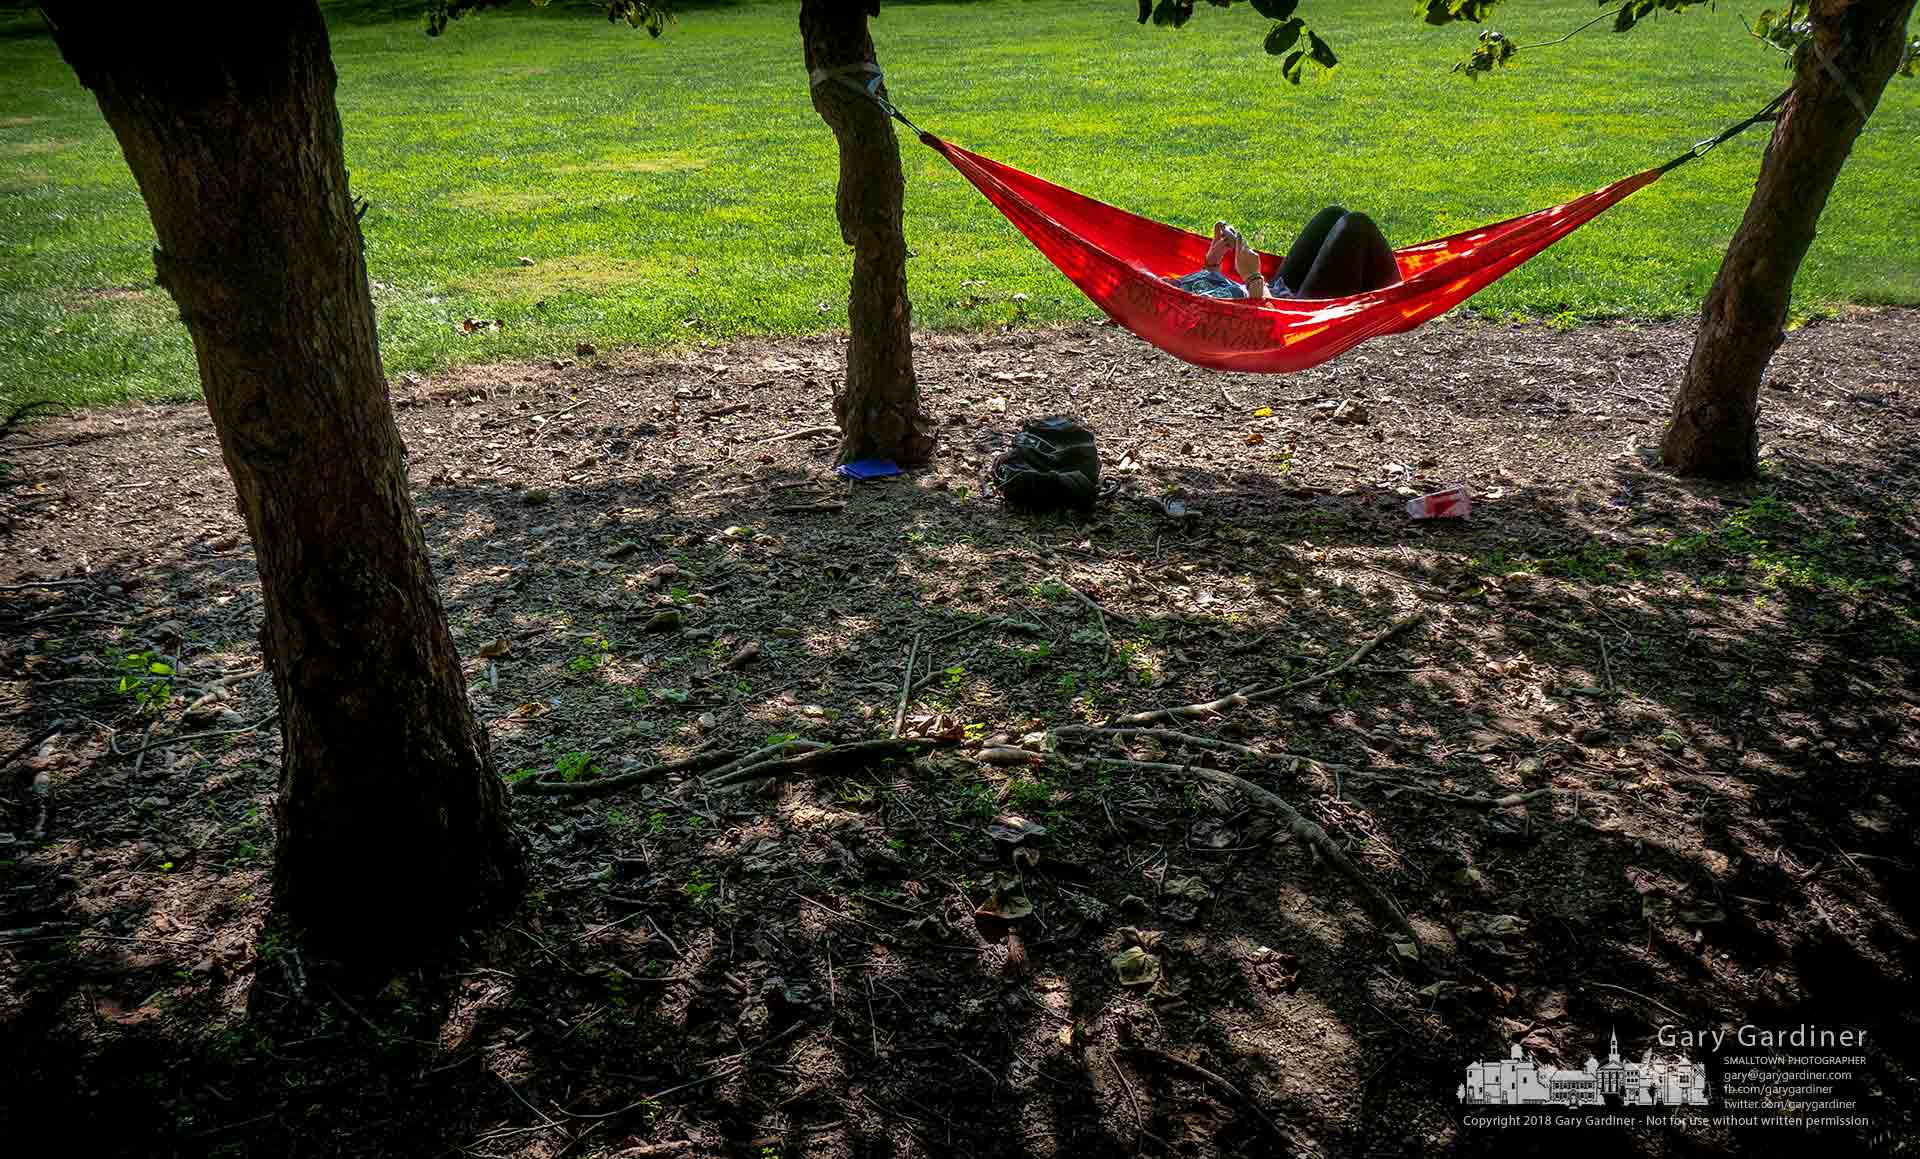 An Otterbein student takes a break from project research and checks her phone as she relaxes in a hammock hanging between two trees in Alum Creek Park North near the campus. My Final Photo for Oct. 1, 2018.